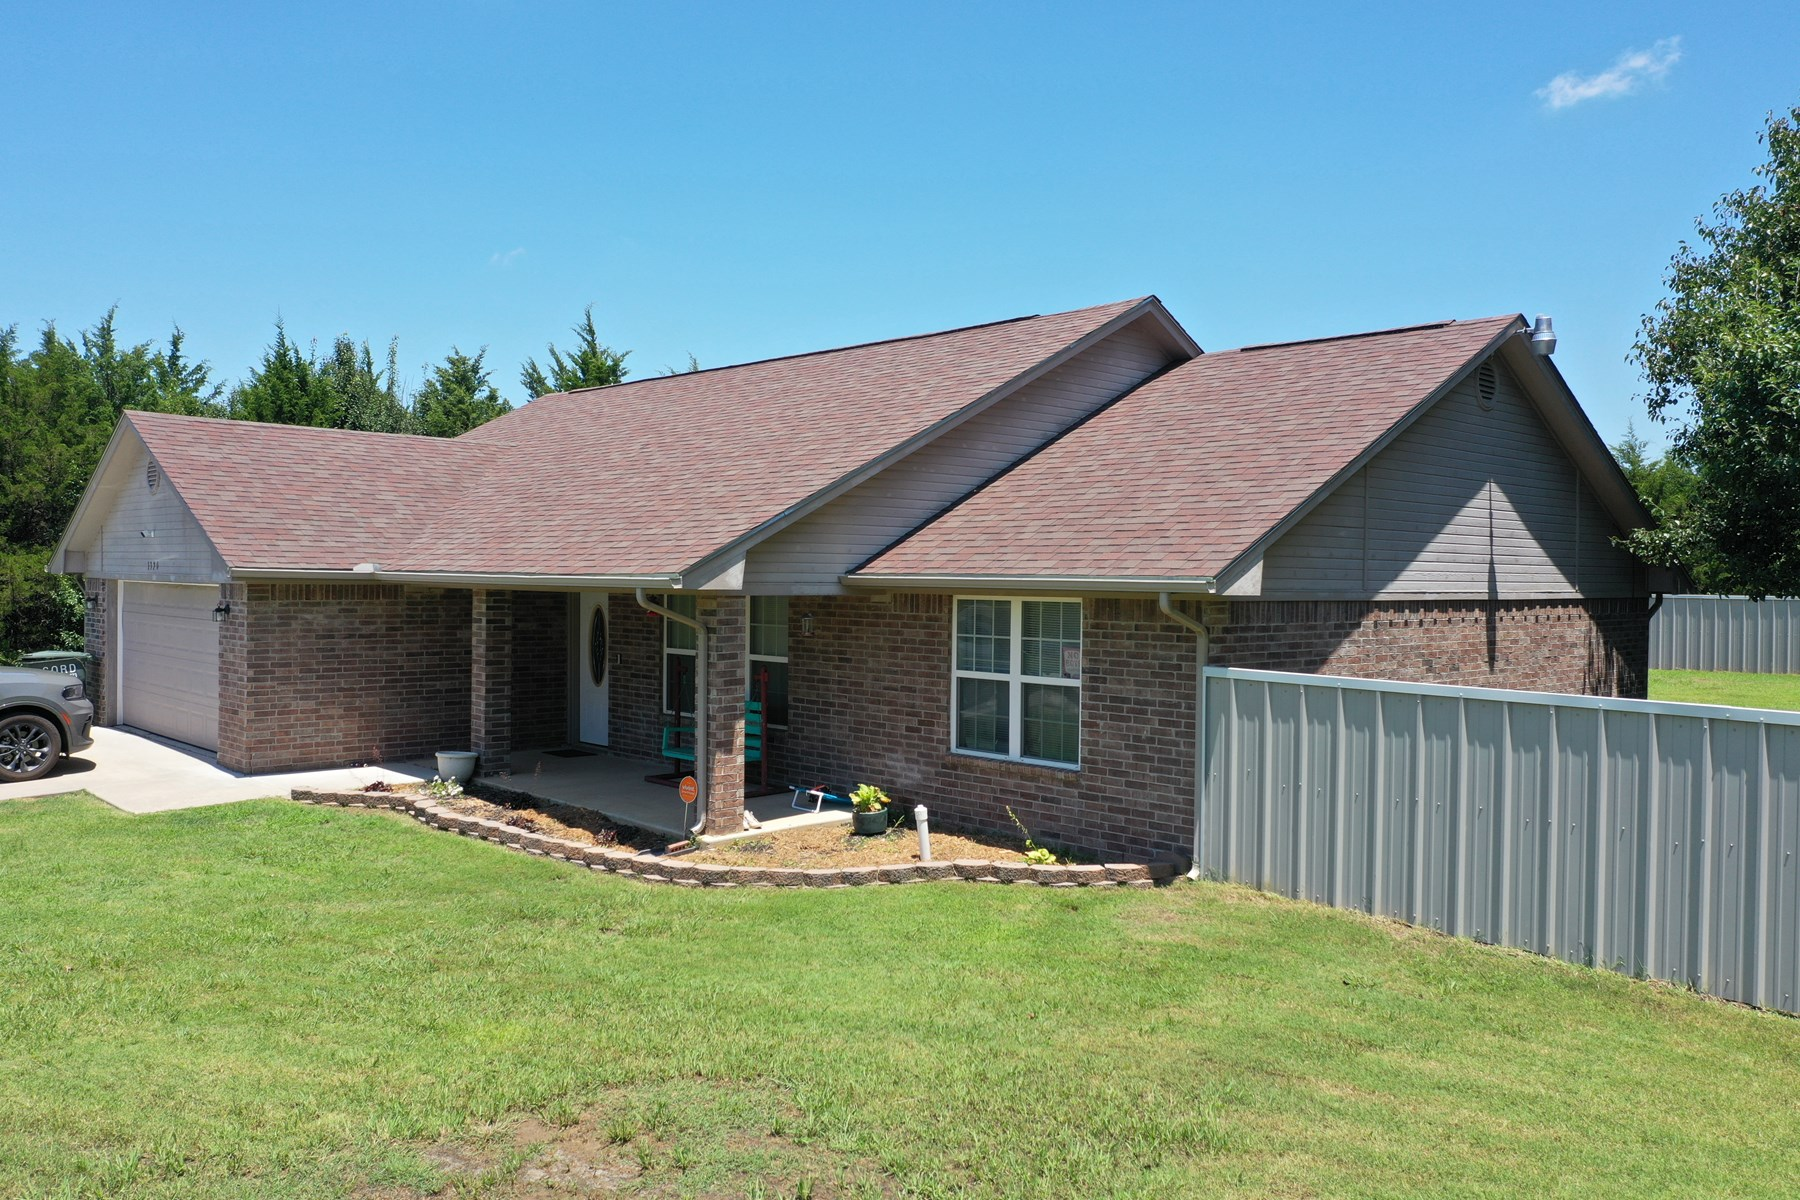 Home for sale in Lone Grove Oklahoma